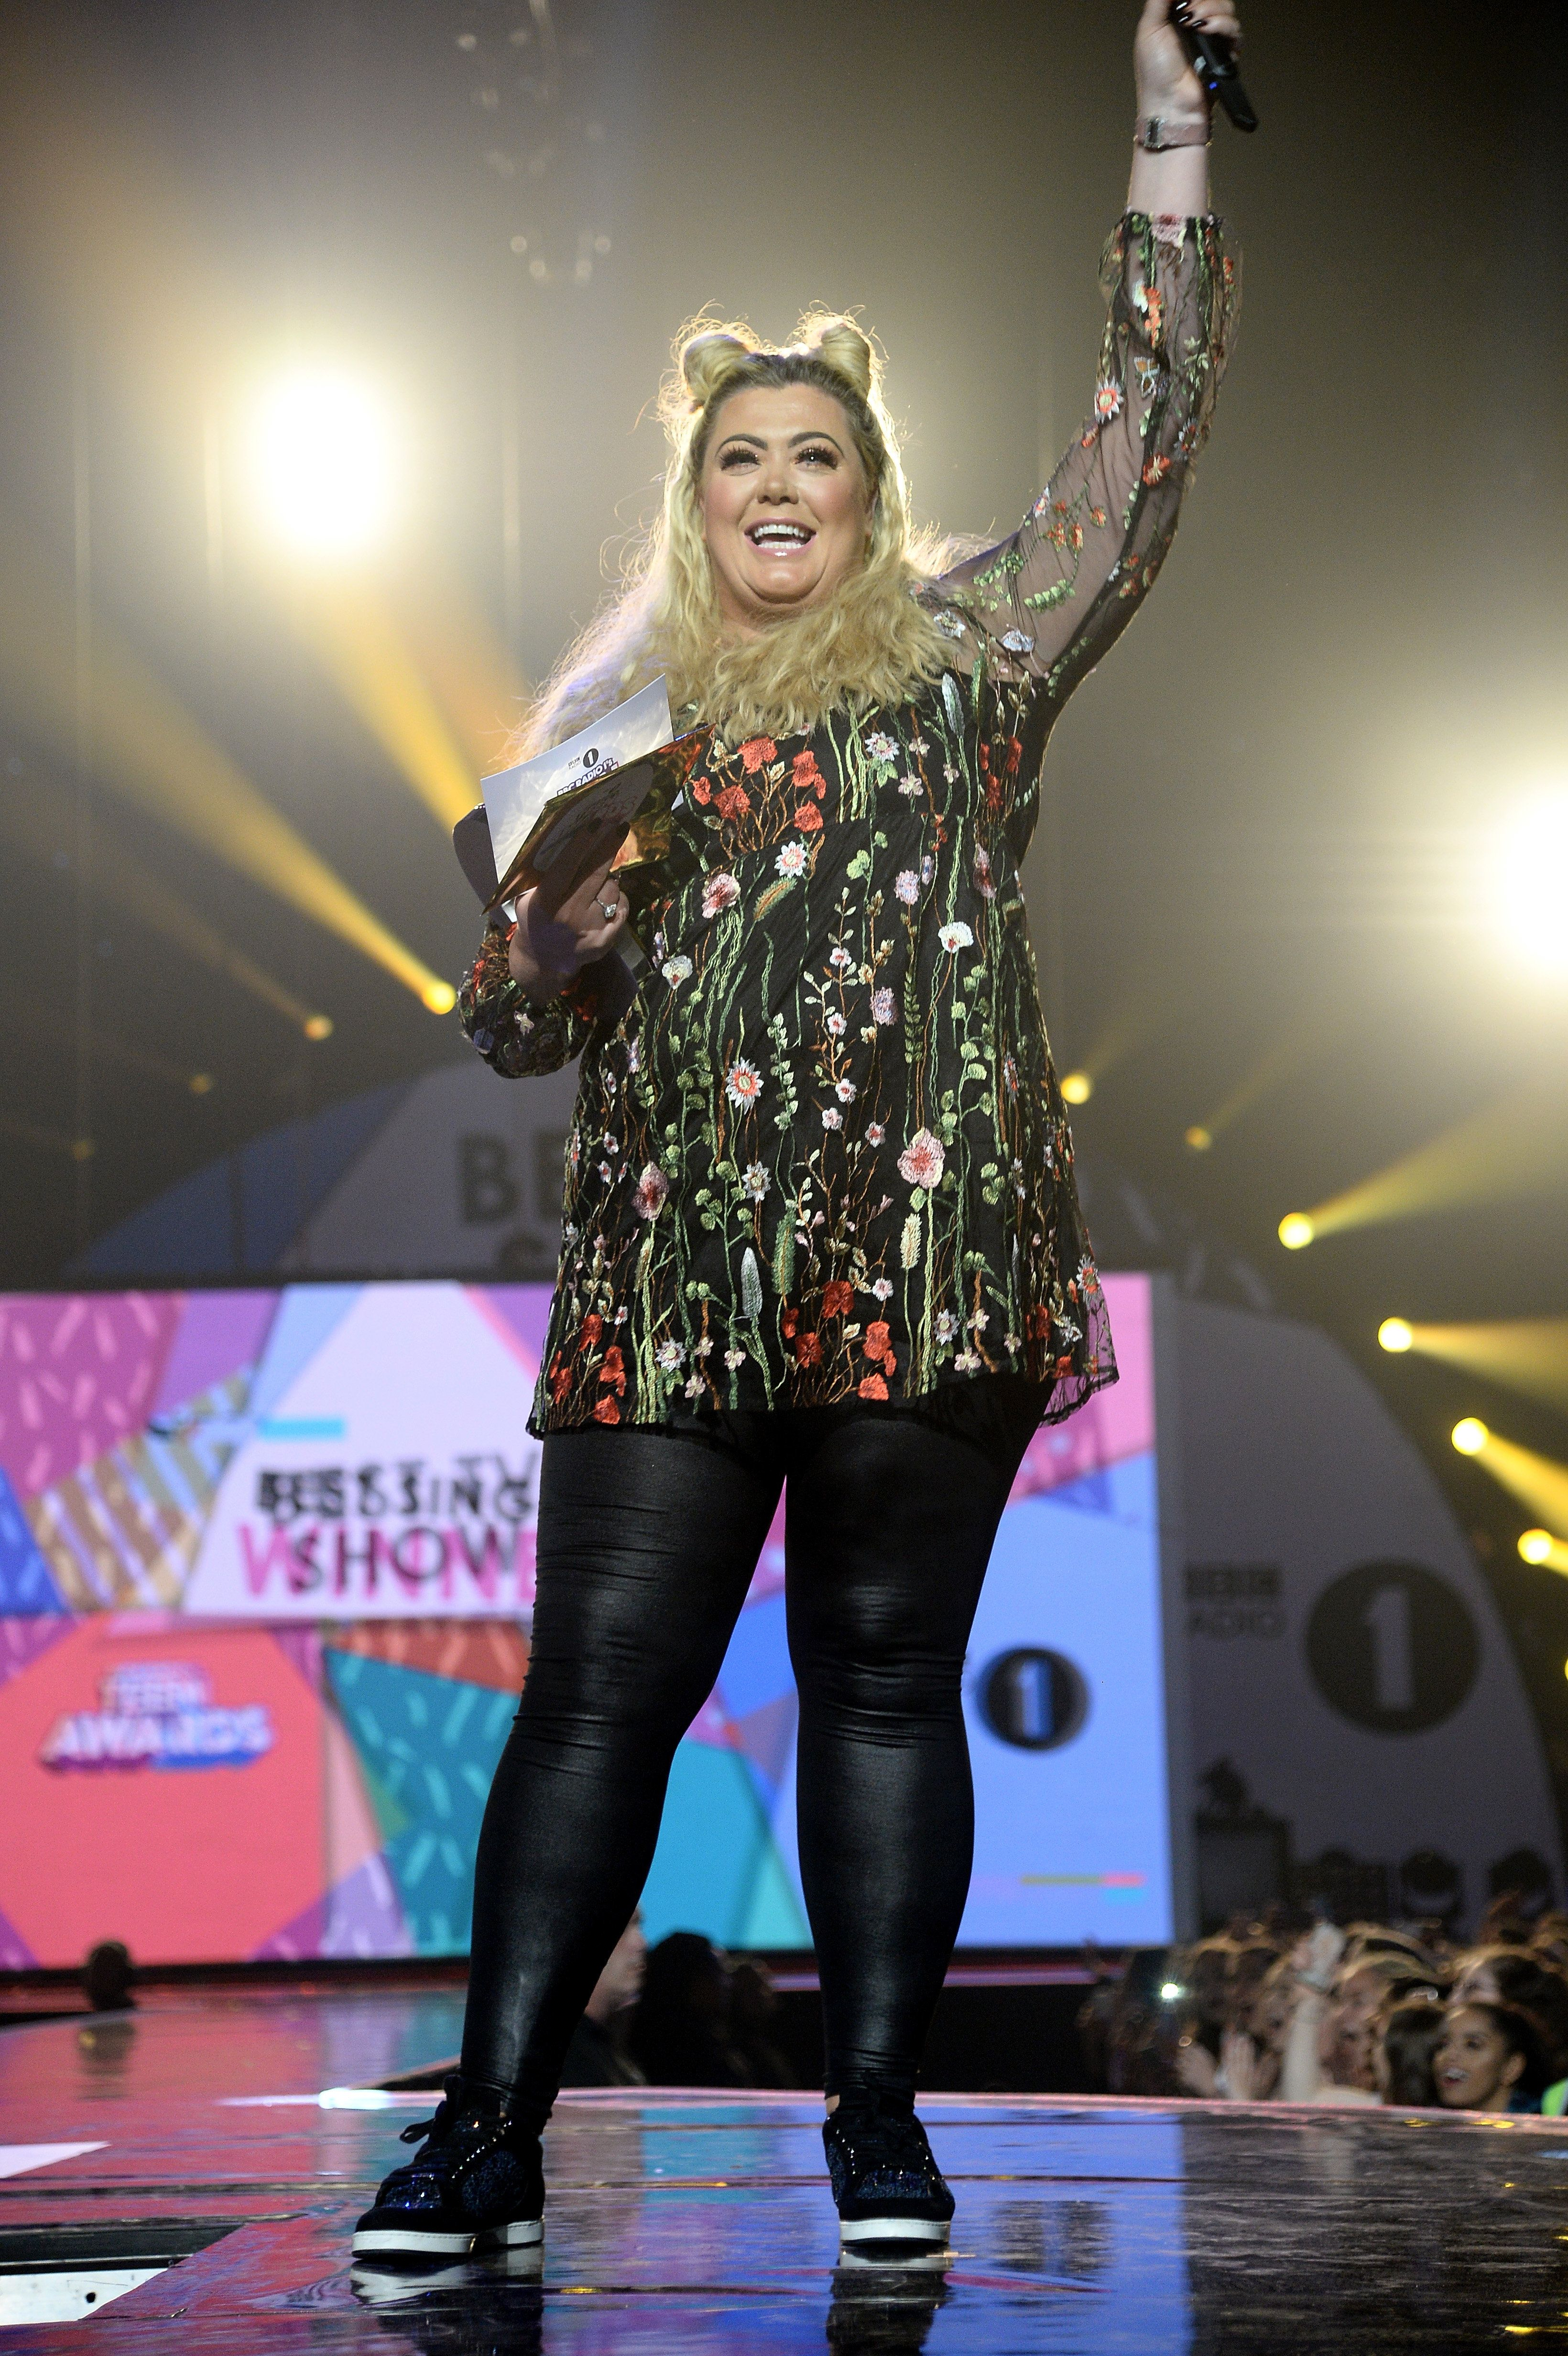 Gemma Collins Is Hoping PR From *That* Fall Will Help Boost 'TOWIE'